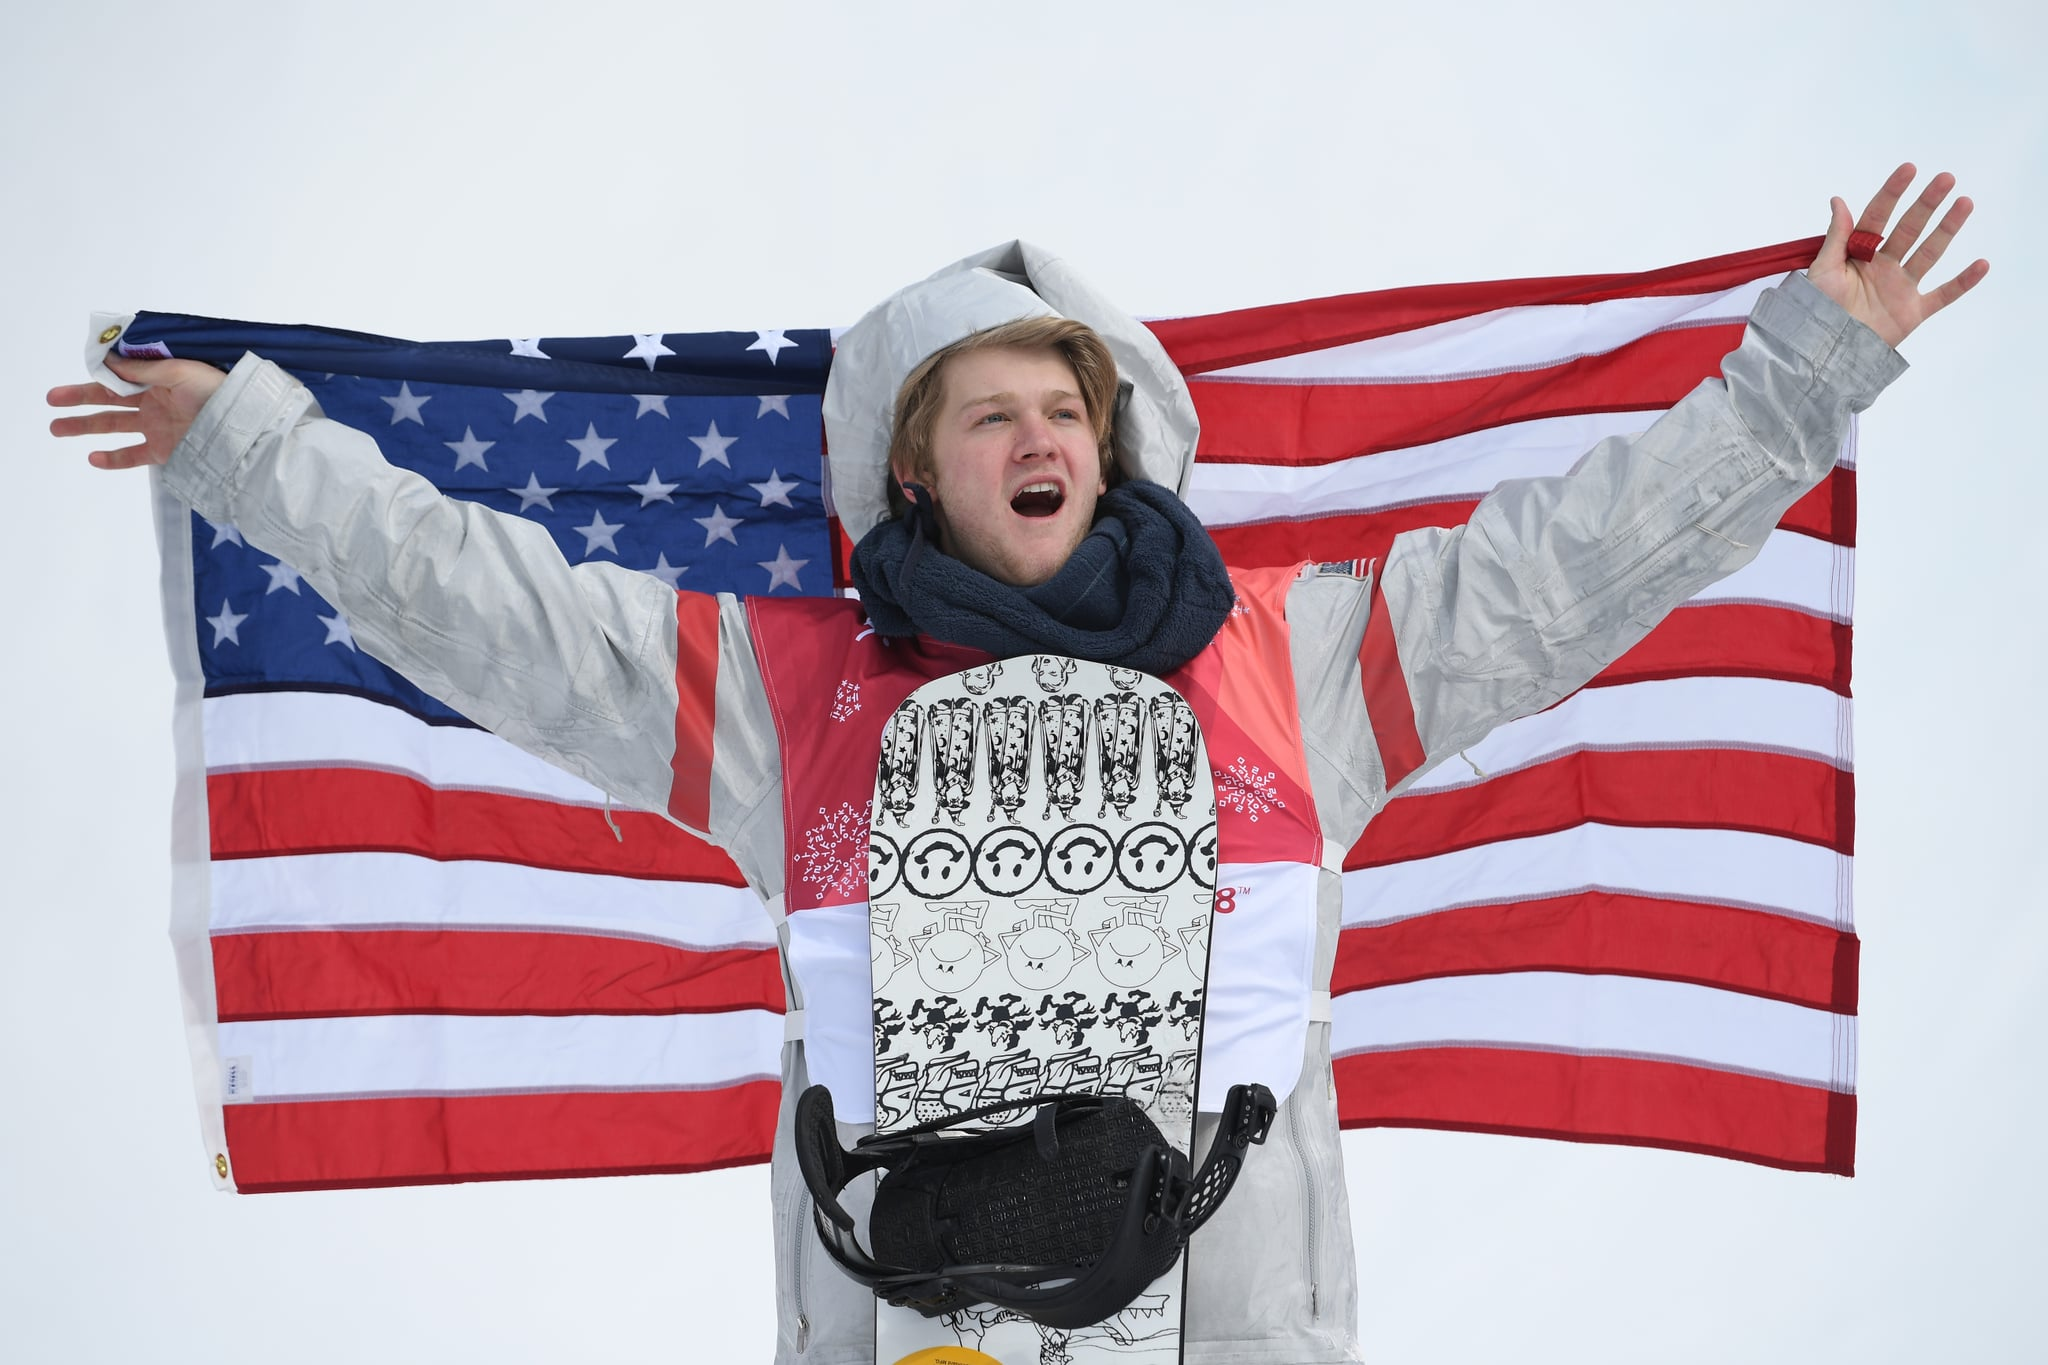 Toutant wins gold in the men's snowboard big air final